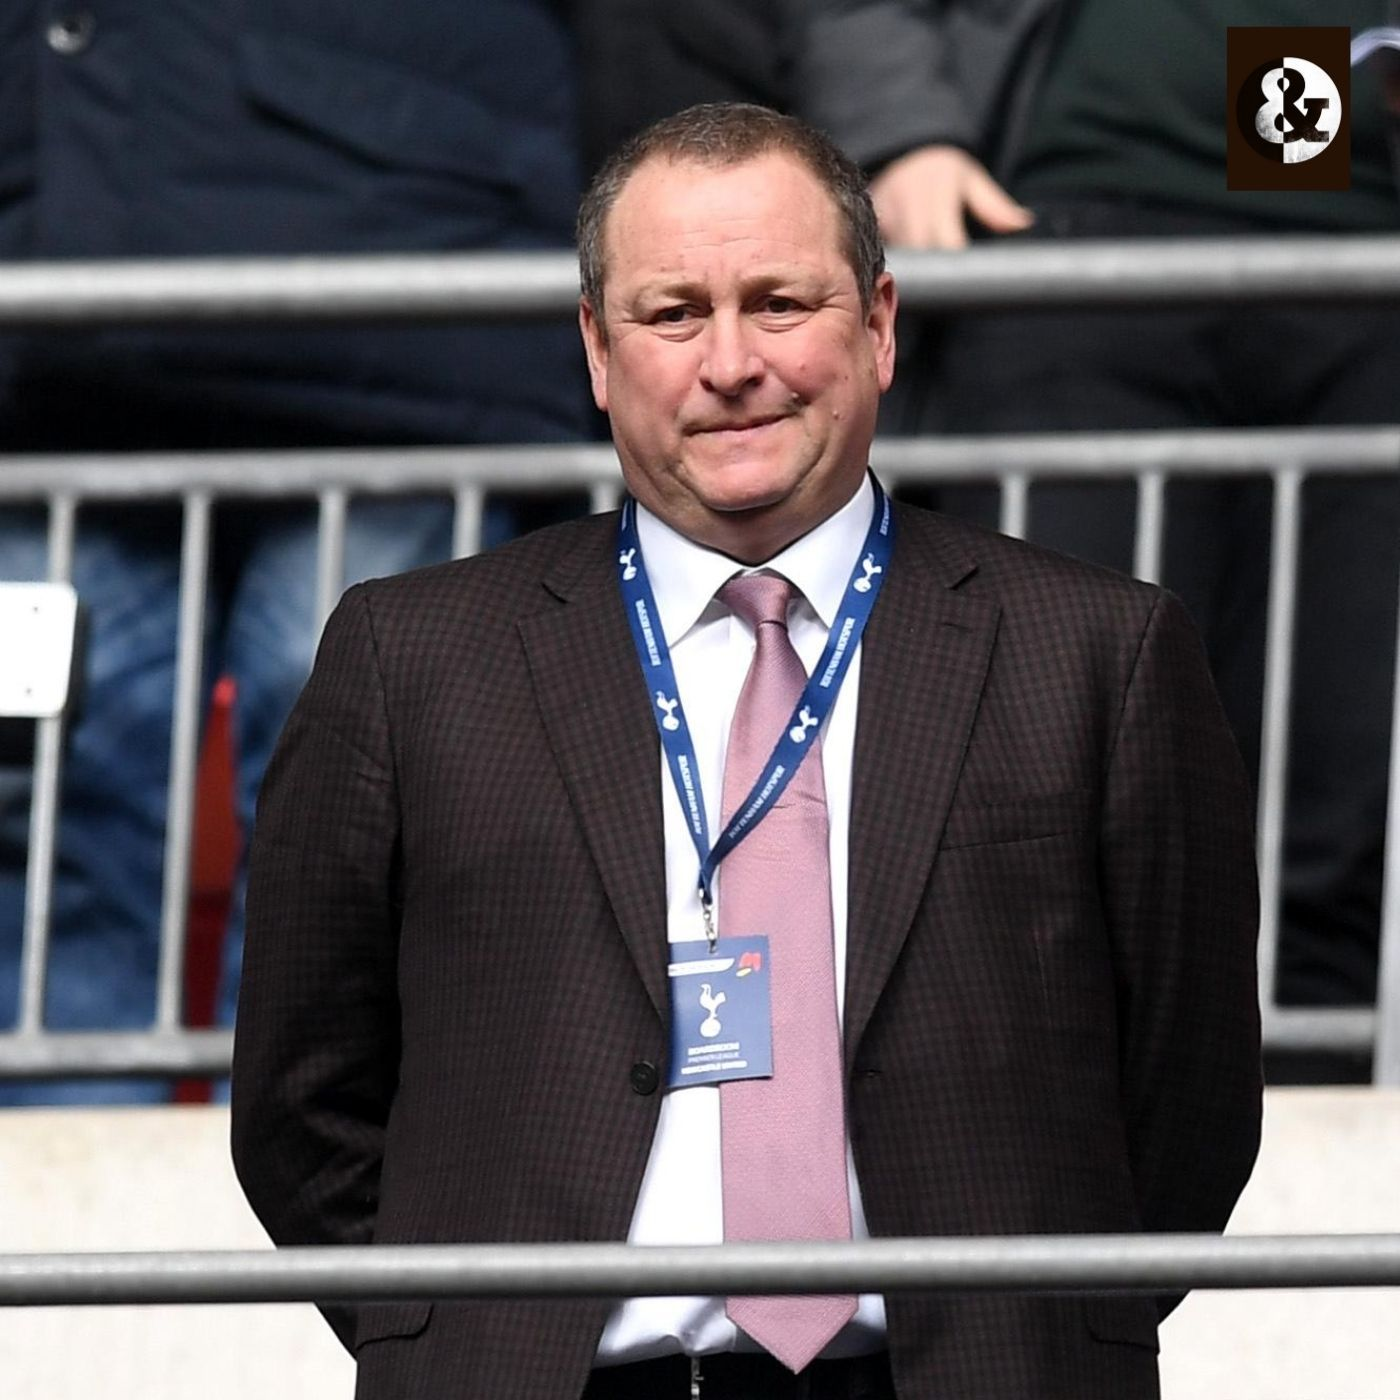 Mike Ashley delivers a clear message to Henry Mauriss